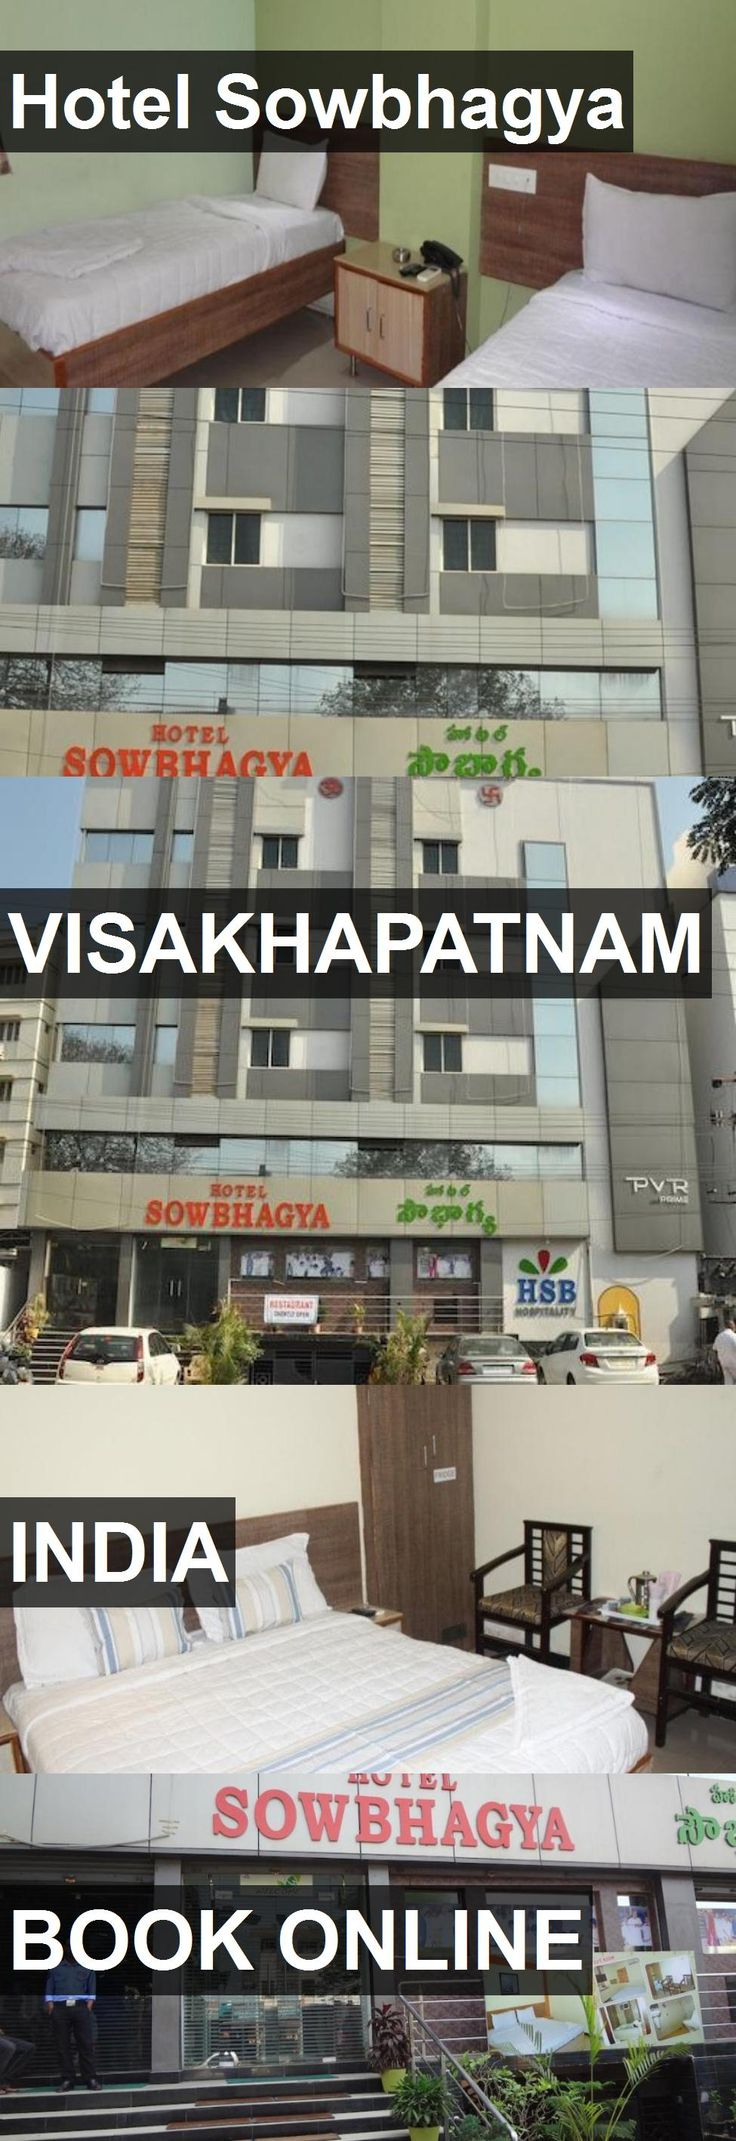 Hotel Sowbhagya in Visakhapatnam, India. For more information, photos, reviews and best prices please follow the link. #India #Visakhapatnam #travel #vacation #hotel